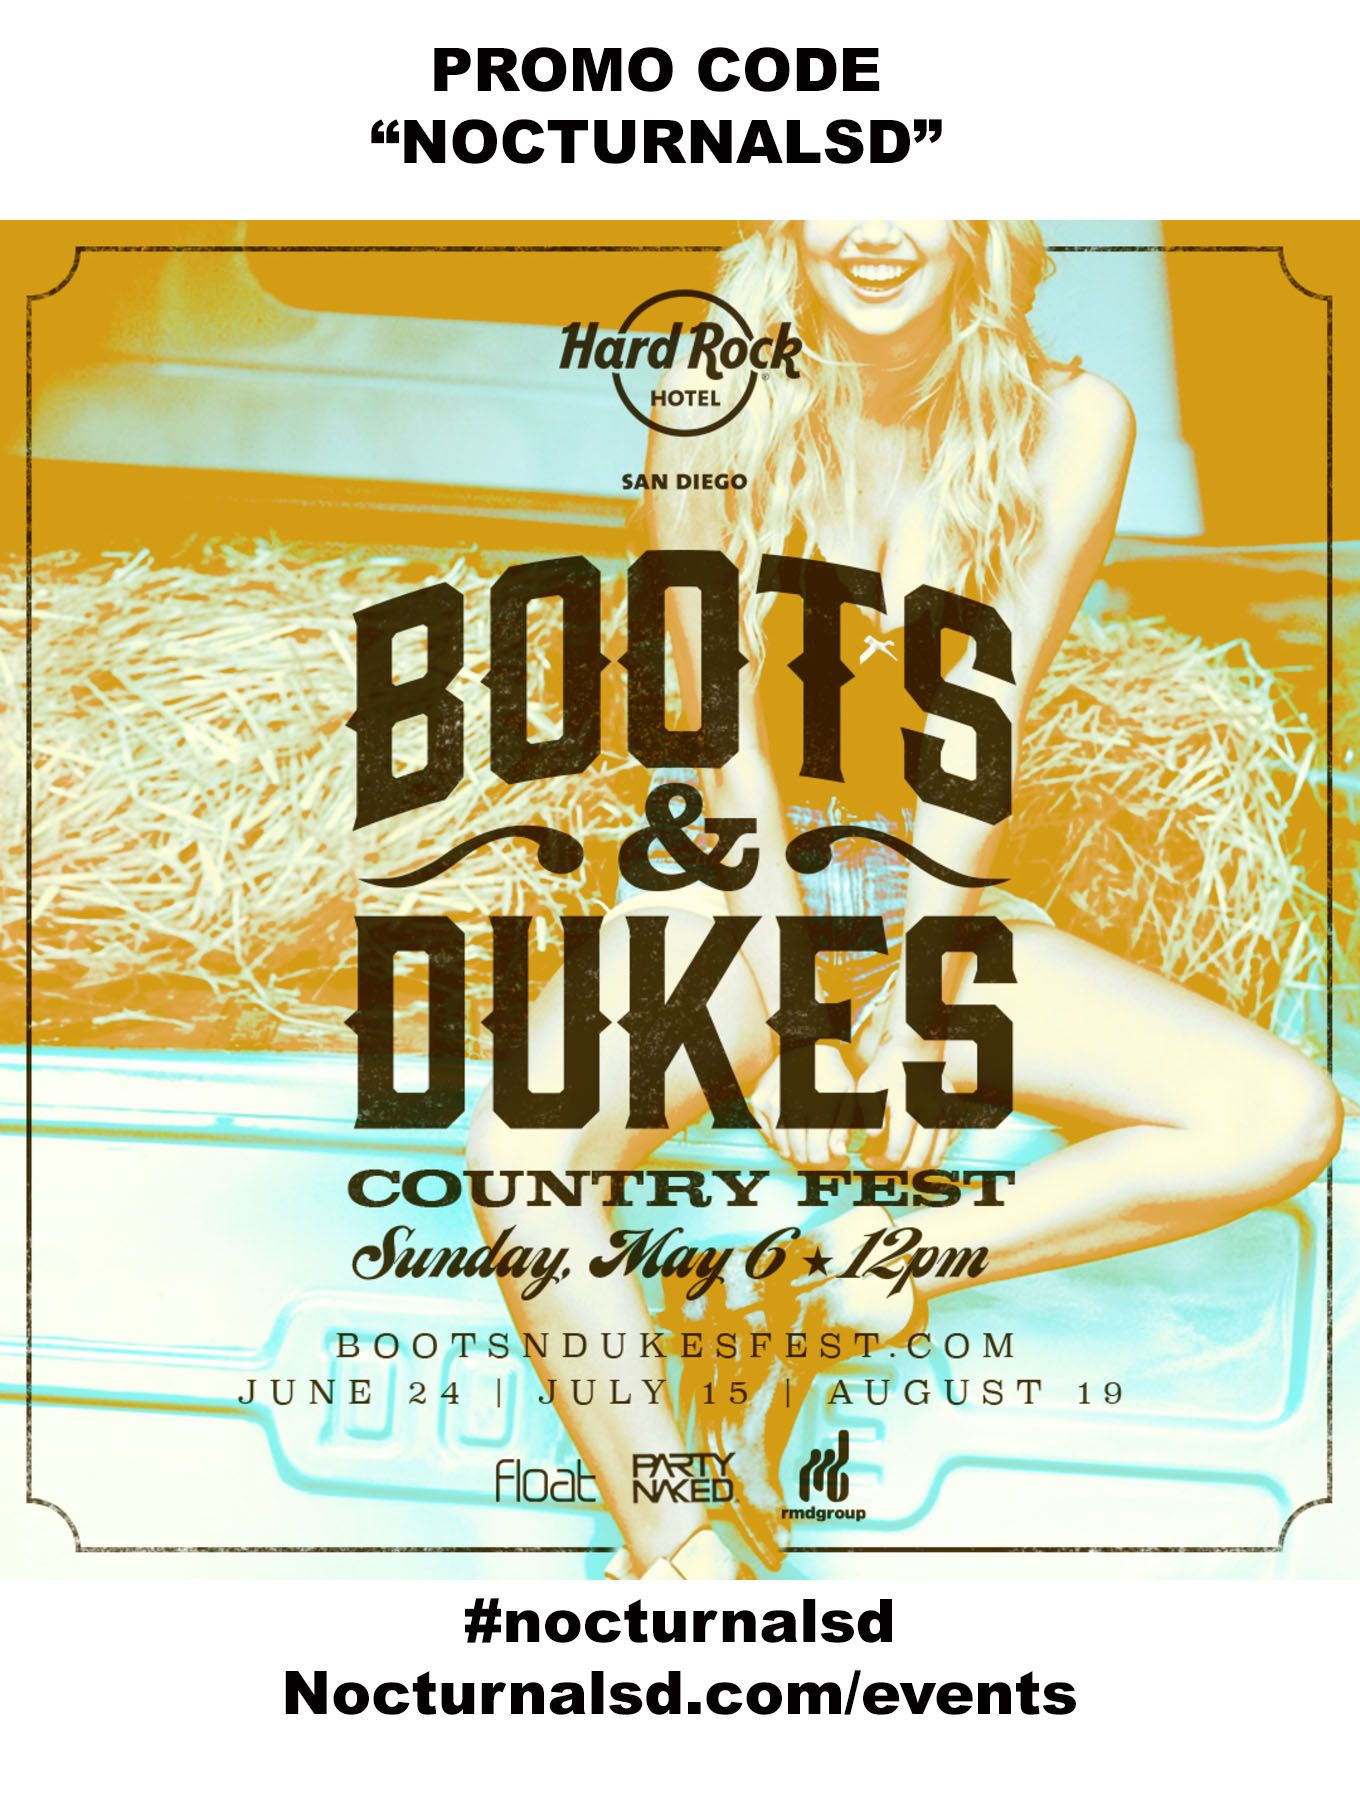 Boots & Dukes Country Fest Promo Code \